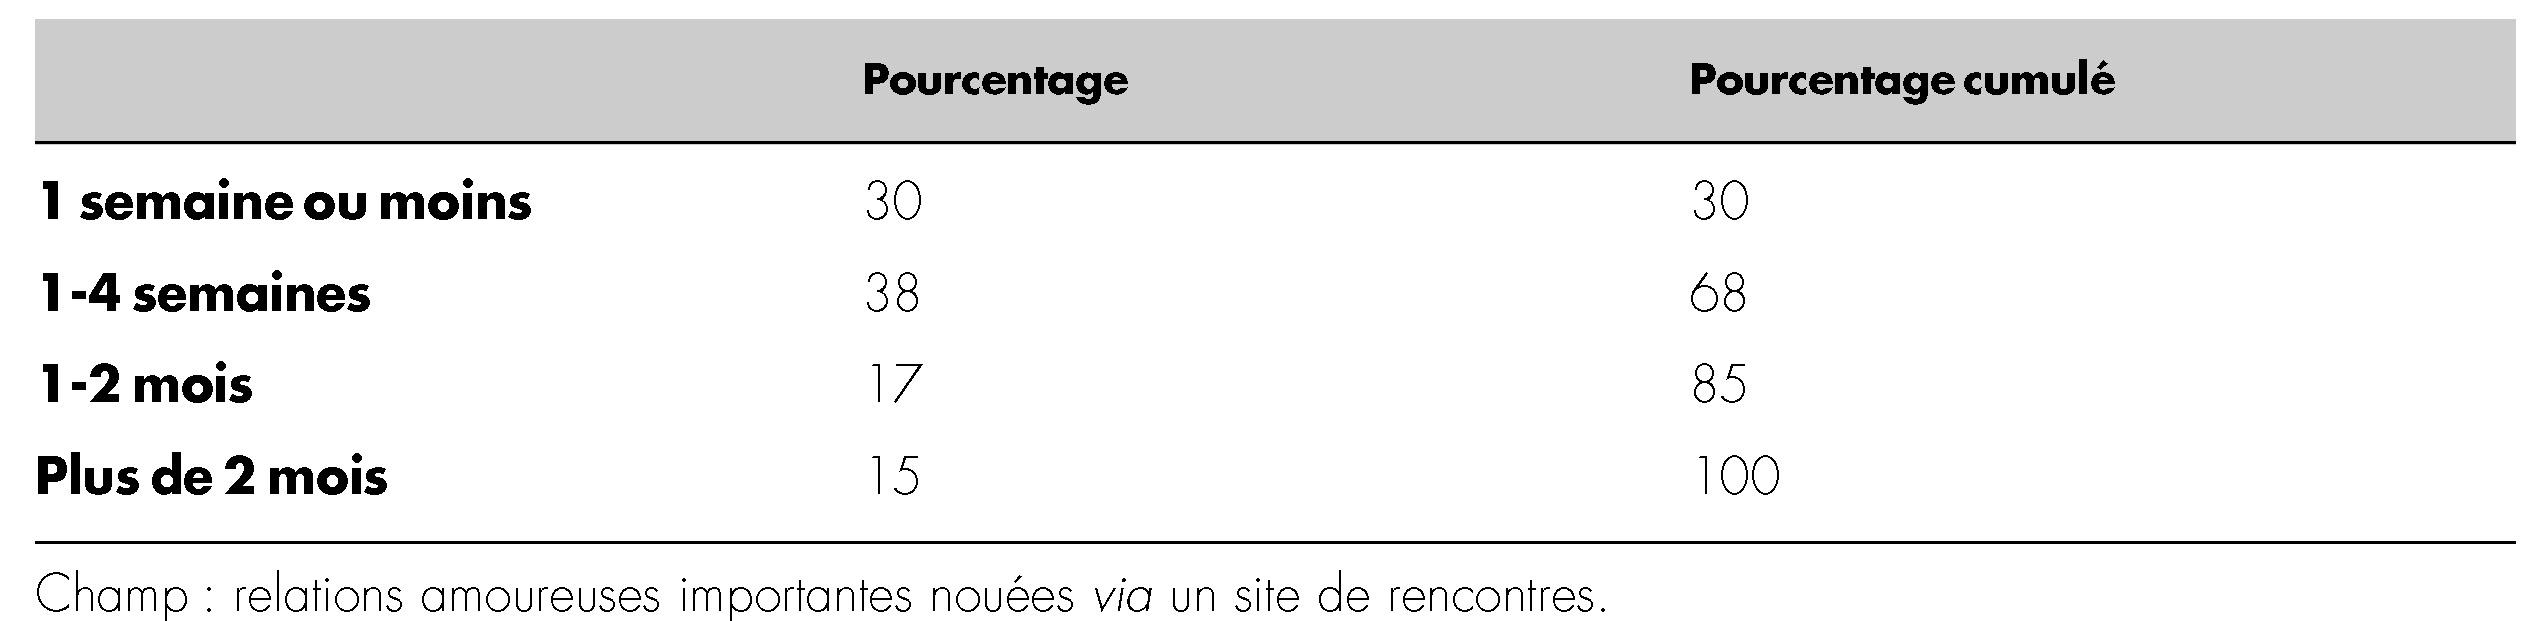 facile à enregistrer le site de rencontre